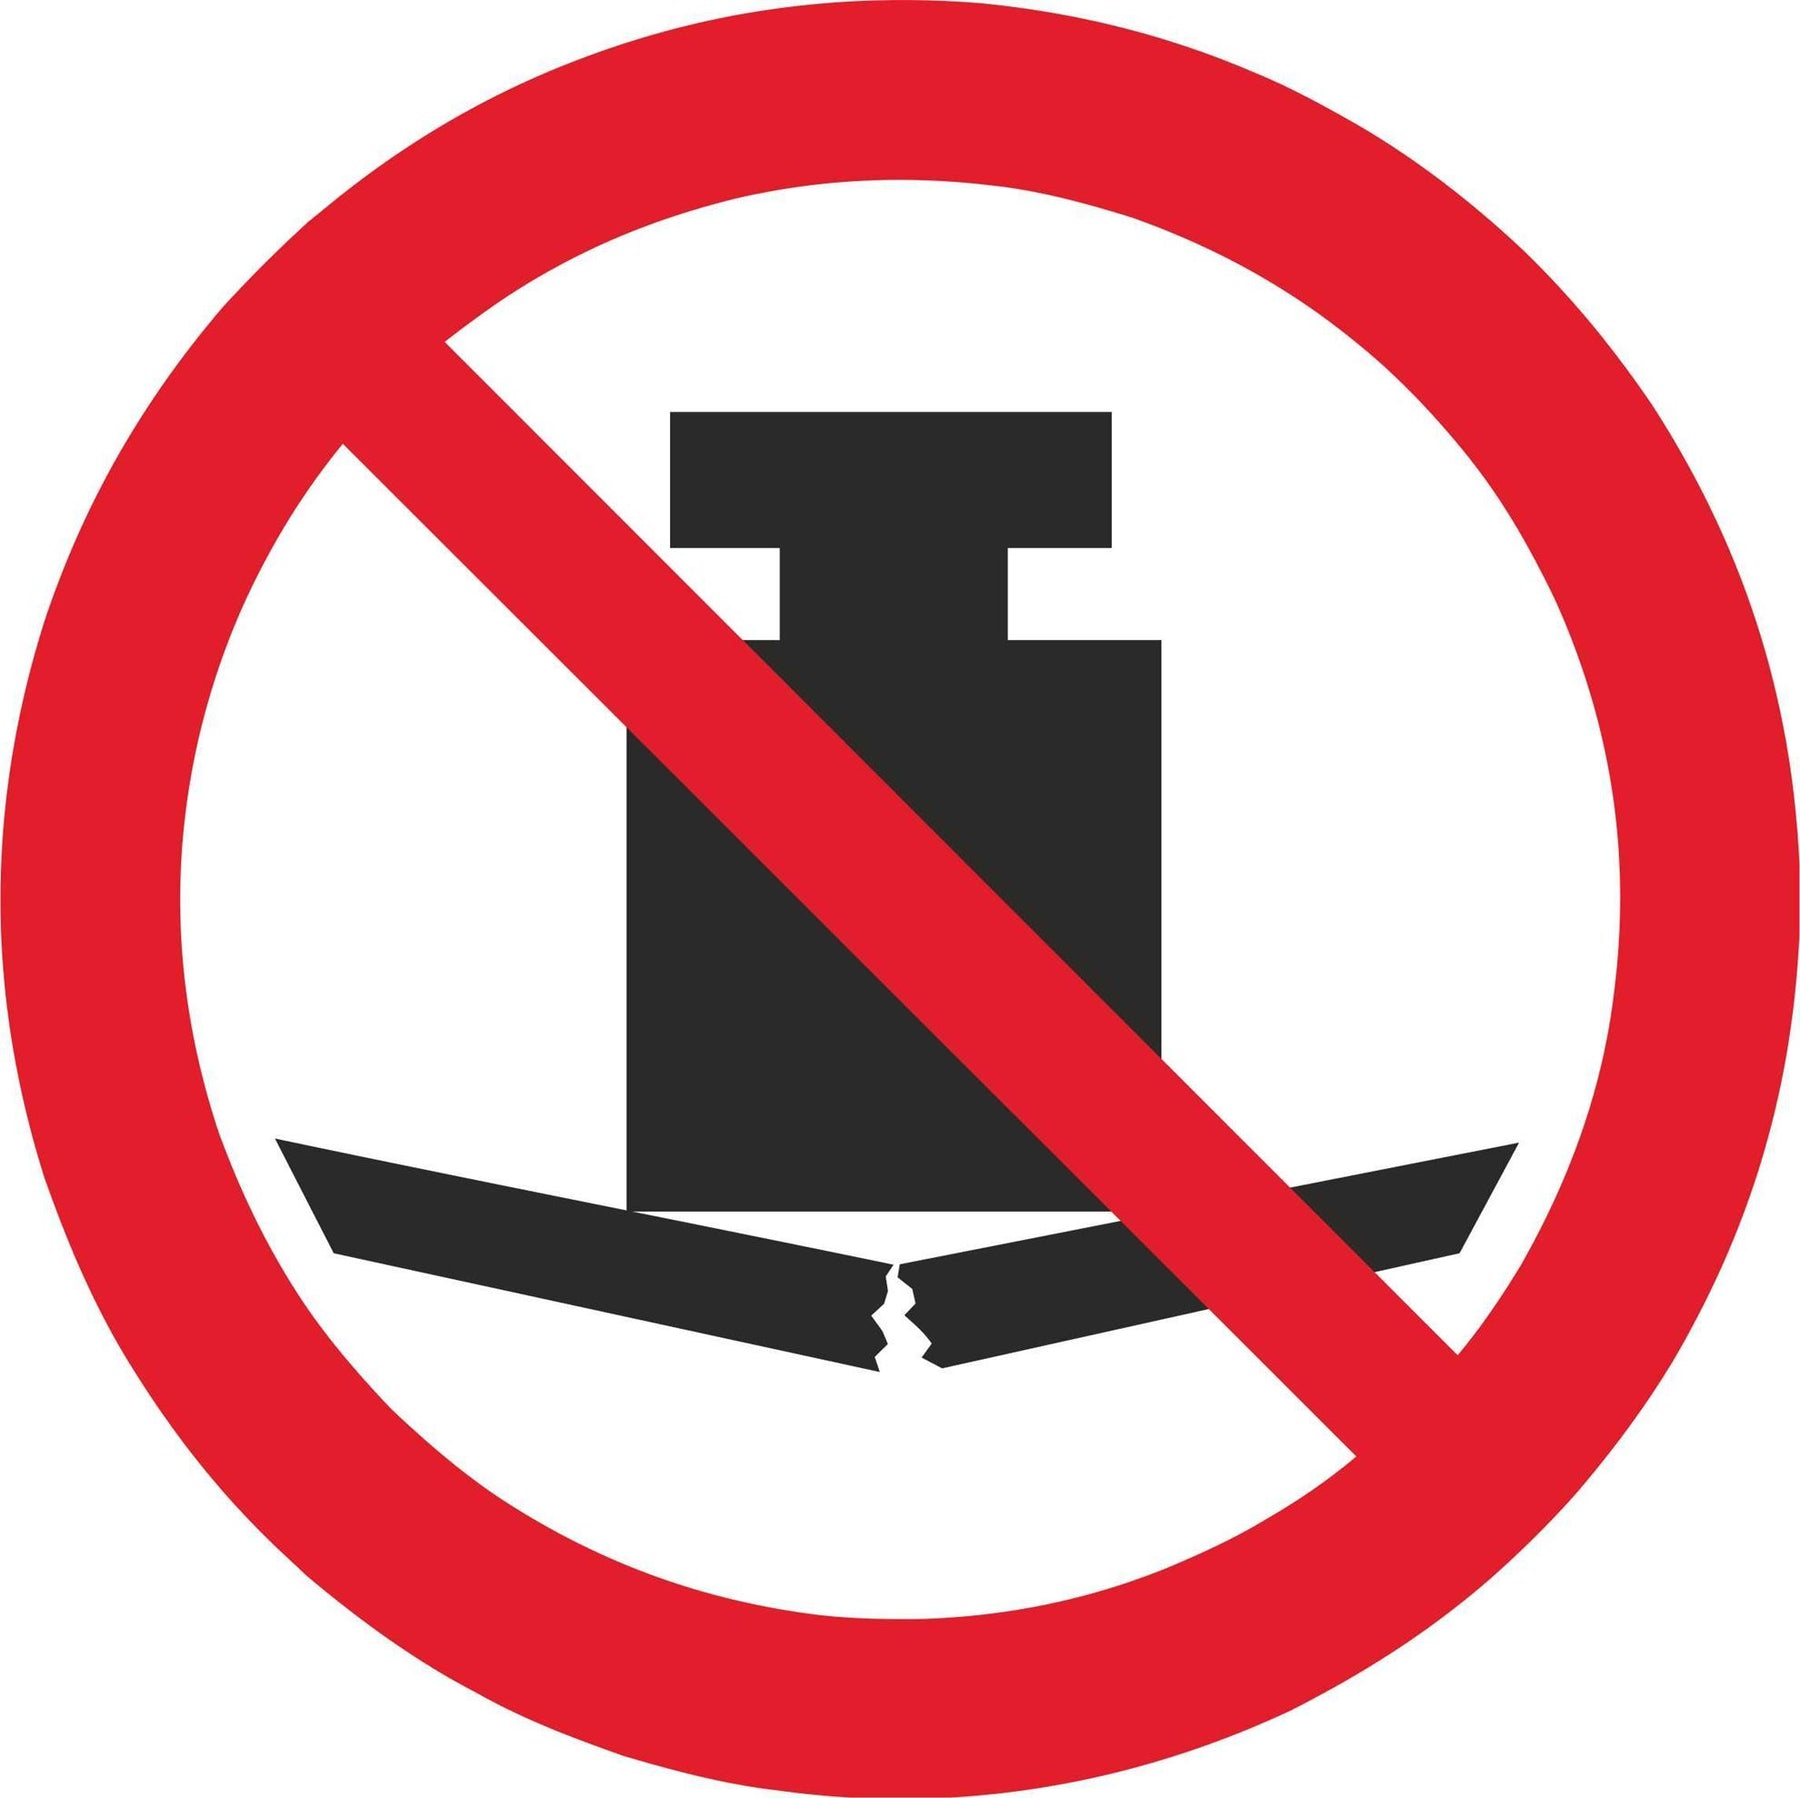 No heavy load - Symbol sticker sheet